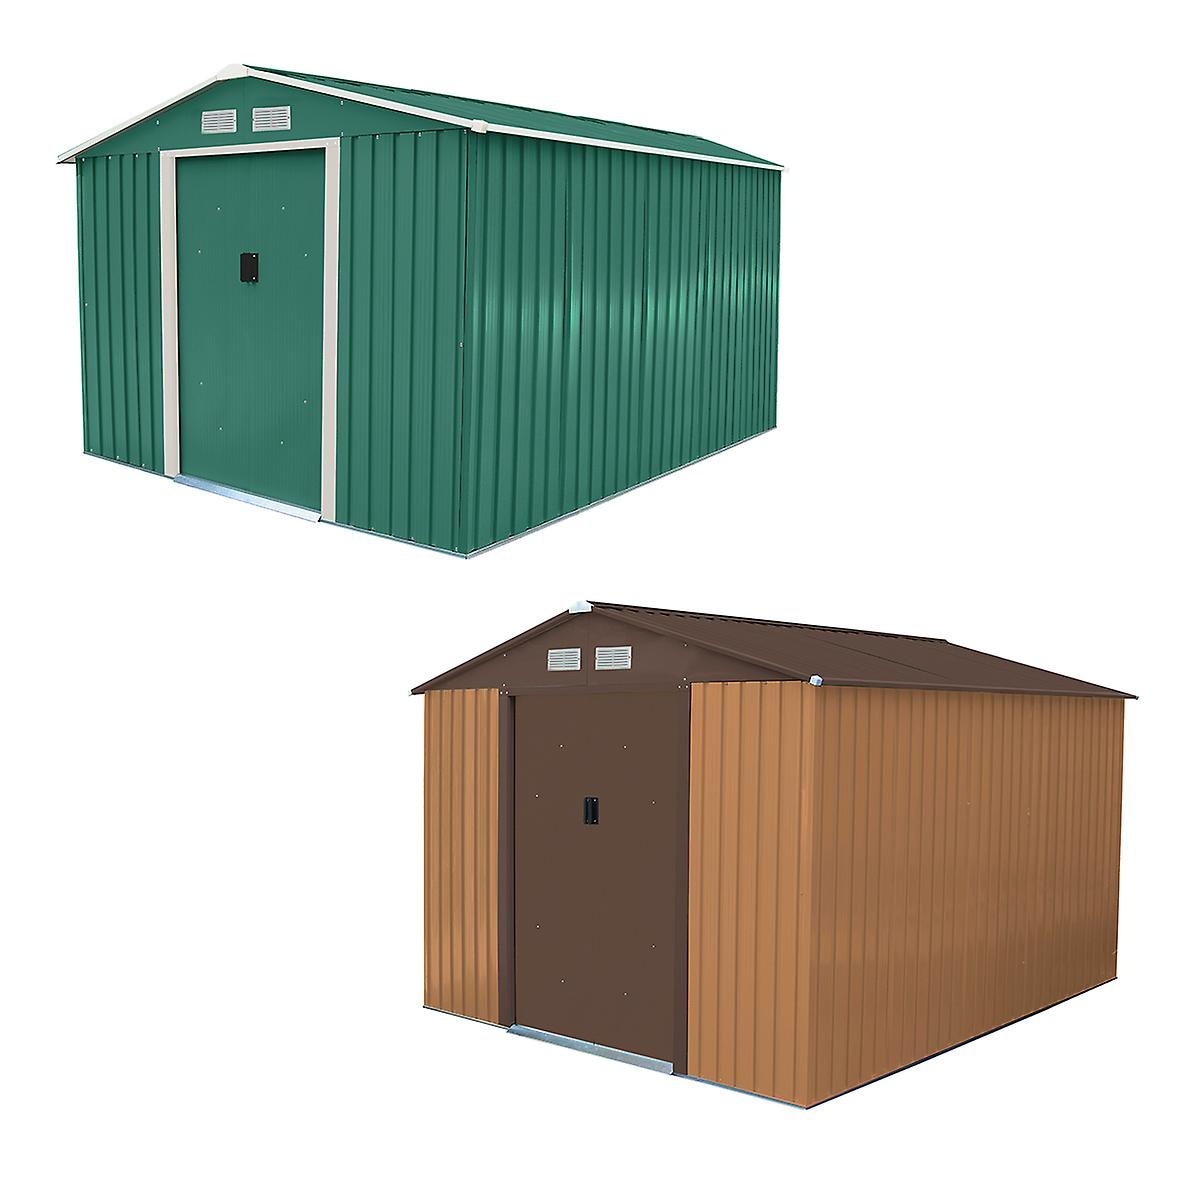 Charles Bentley Metal Garden Shed Outdoor Storage Zinc Frame - Weatherproof in Brown / Green - 8X10Ft